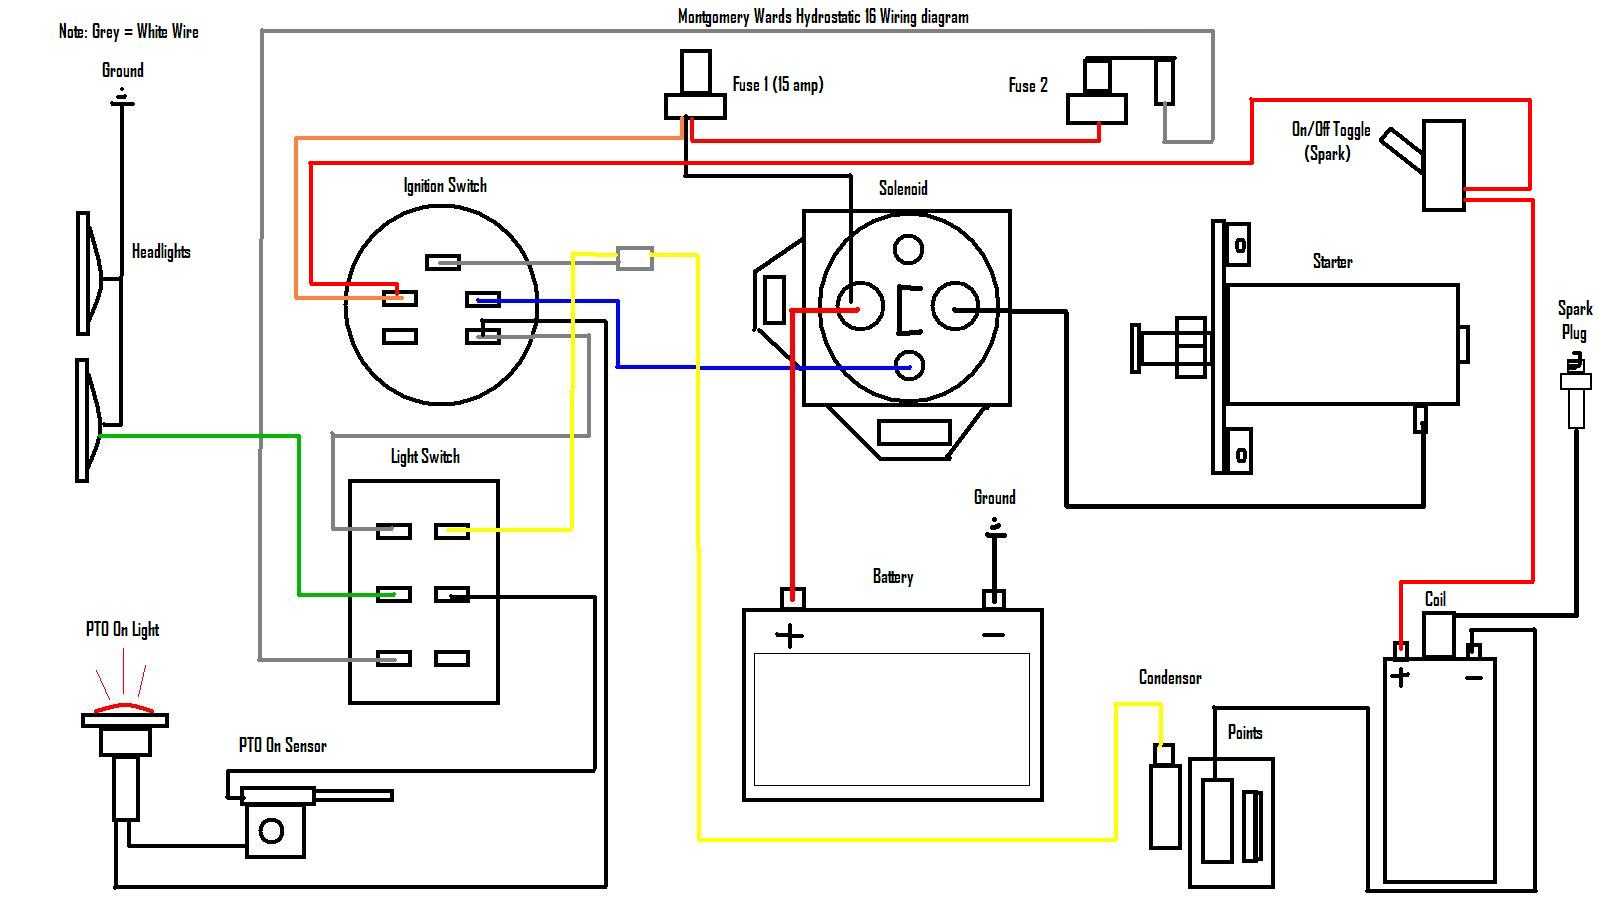 case lawn tractor wiring diagram vt 4888  john deere 2010 ignition switch wiring diagram new to me  john deere 2010 ignition switch wiring